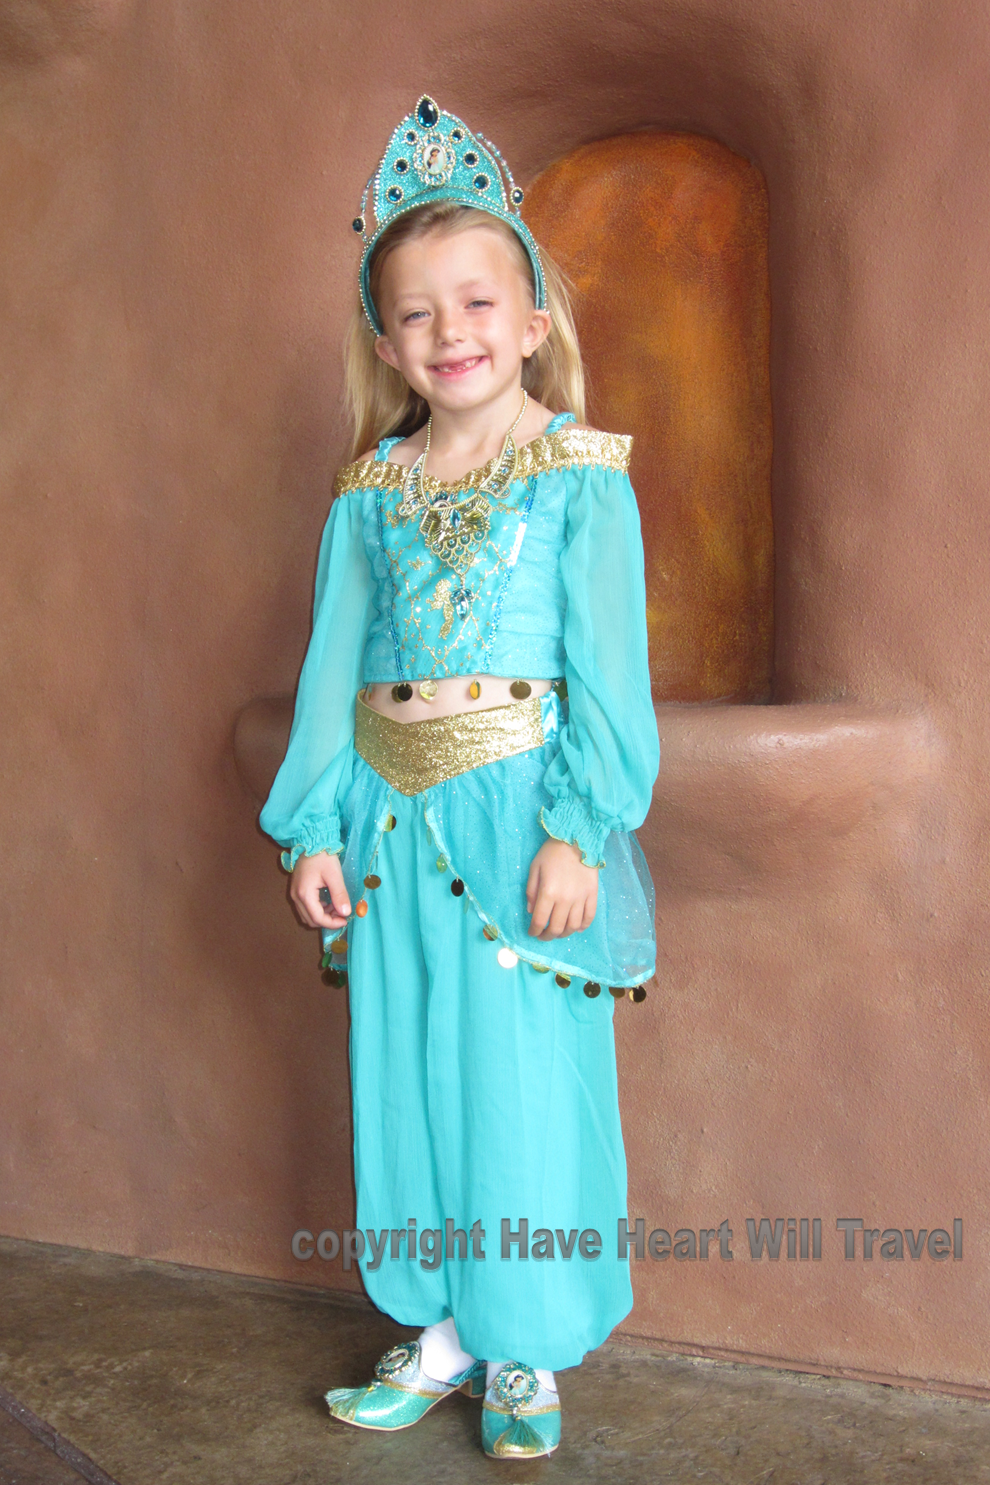 Ainsley as Jasmine HHWT